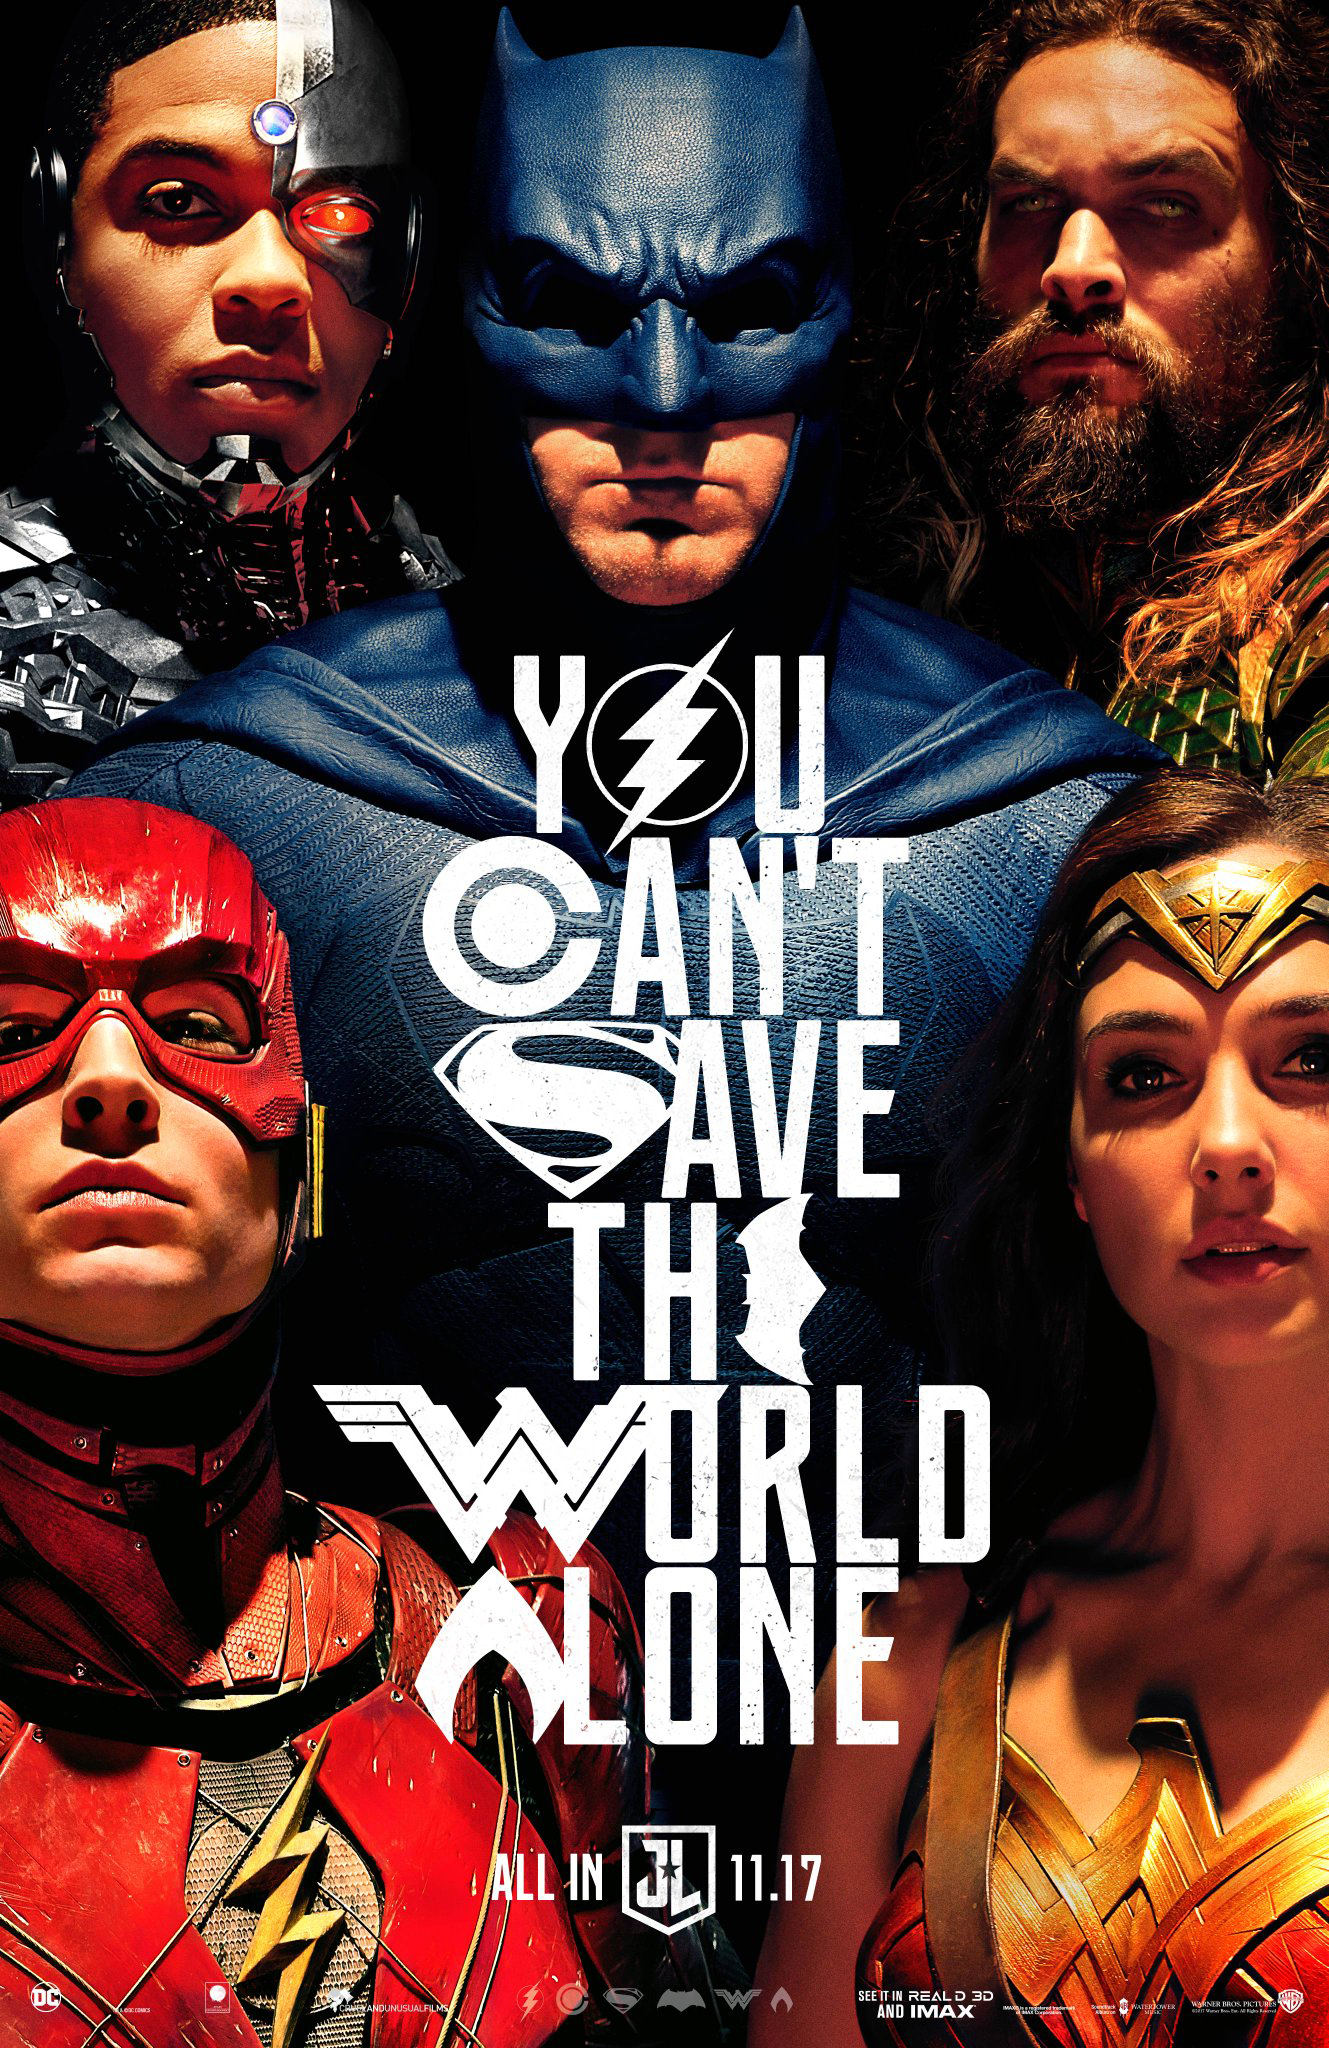 The new official poster for Justice League